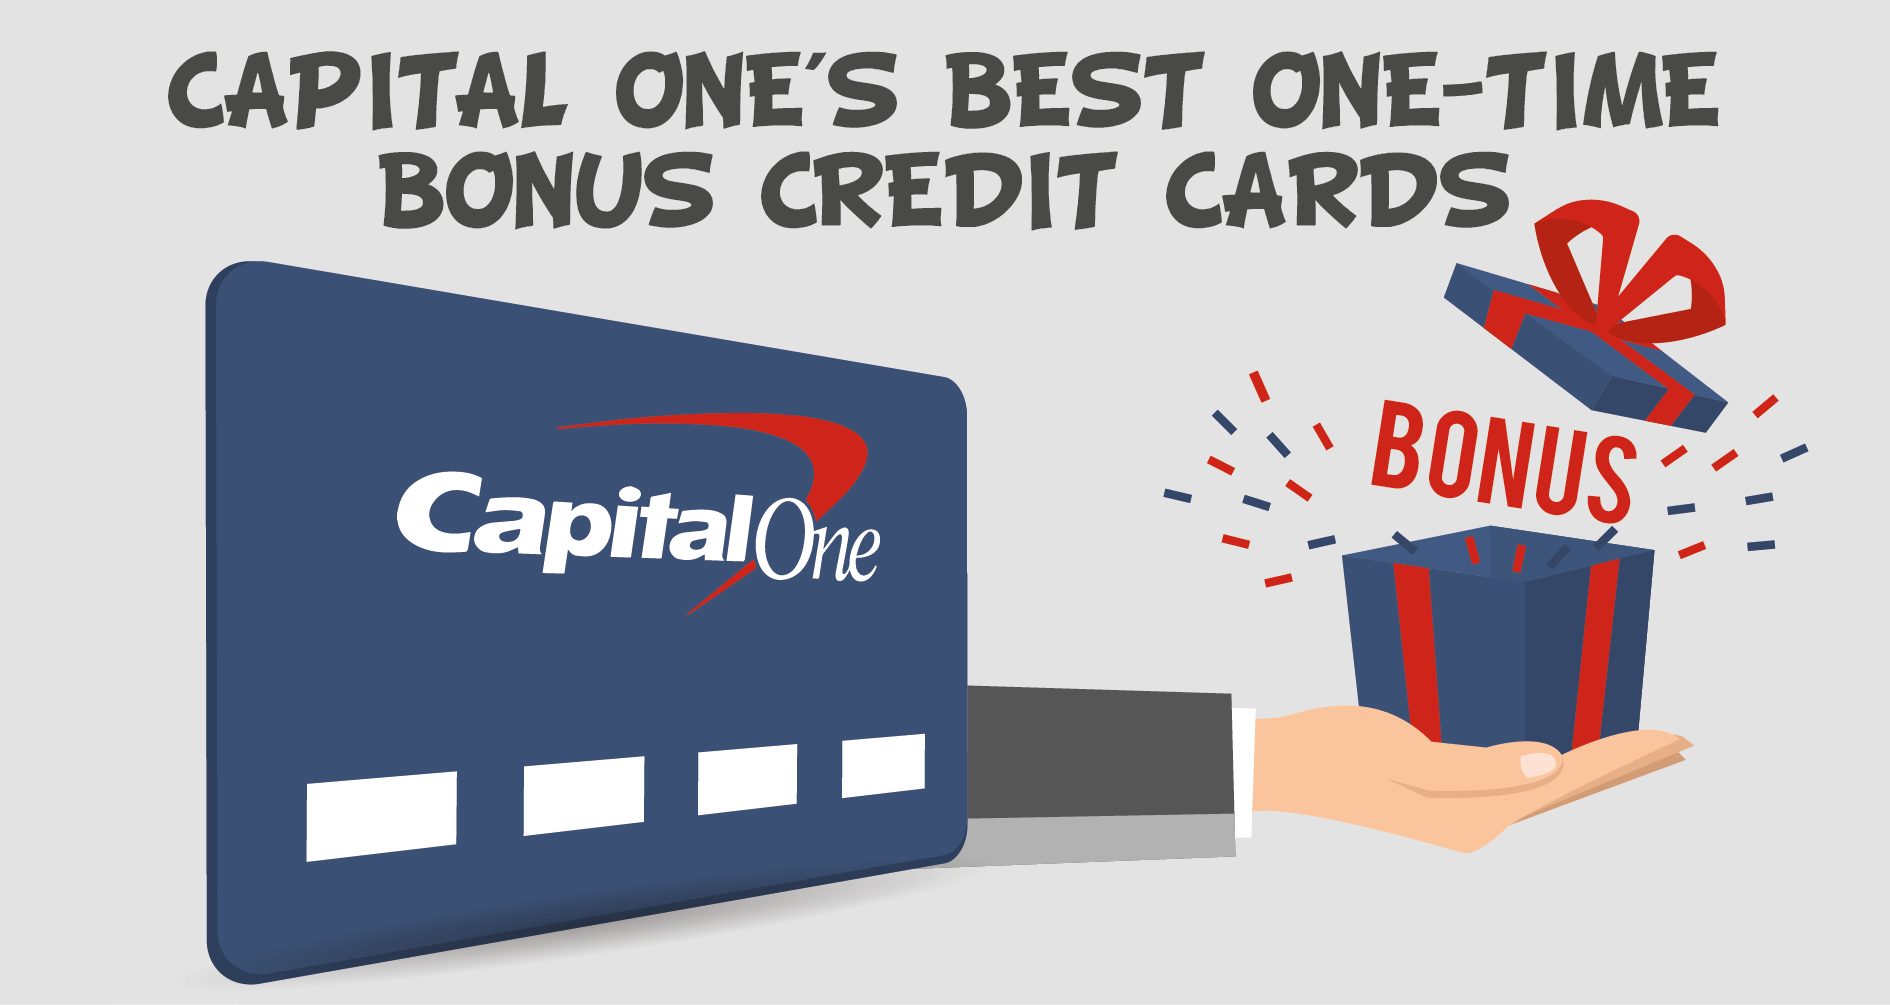 Capital One Auto Loan Payment >> Capital One's Best One-Time Bonus Credit Cards - CreditLoan.com®